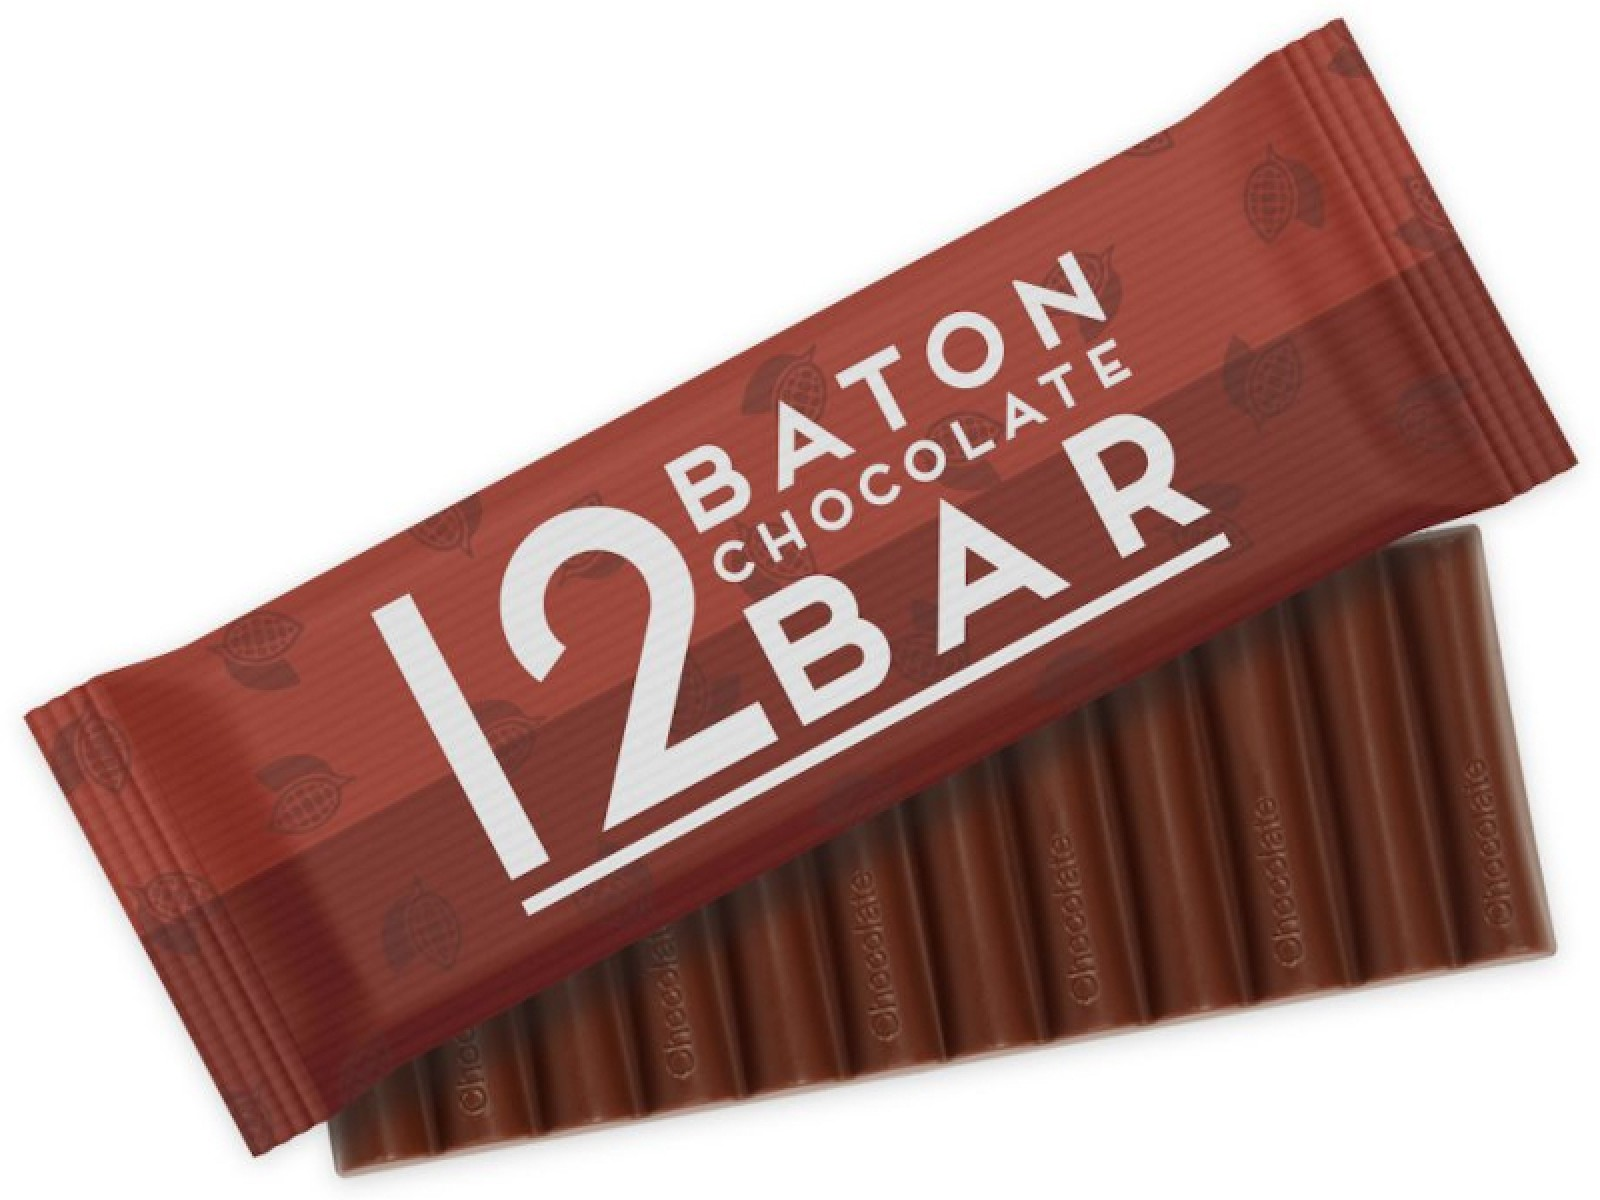 12-baton-chocolate-bar_A